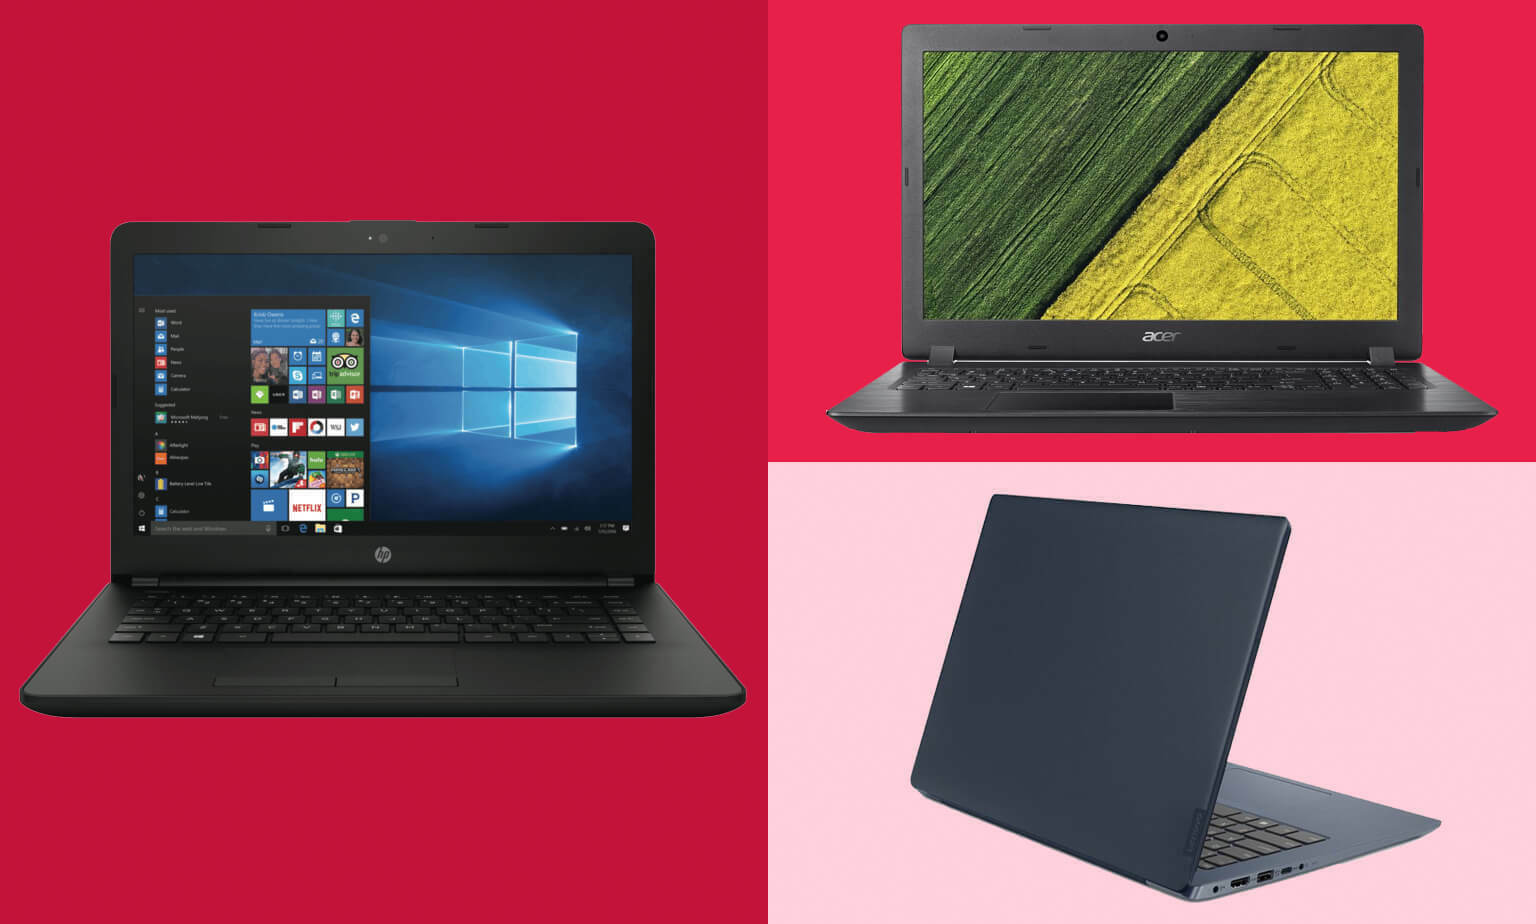 Top Deals - Desktops, Laptops & Gaming